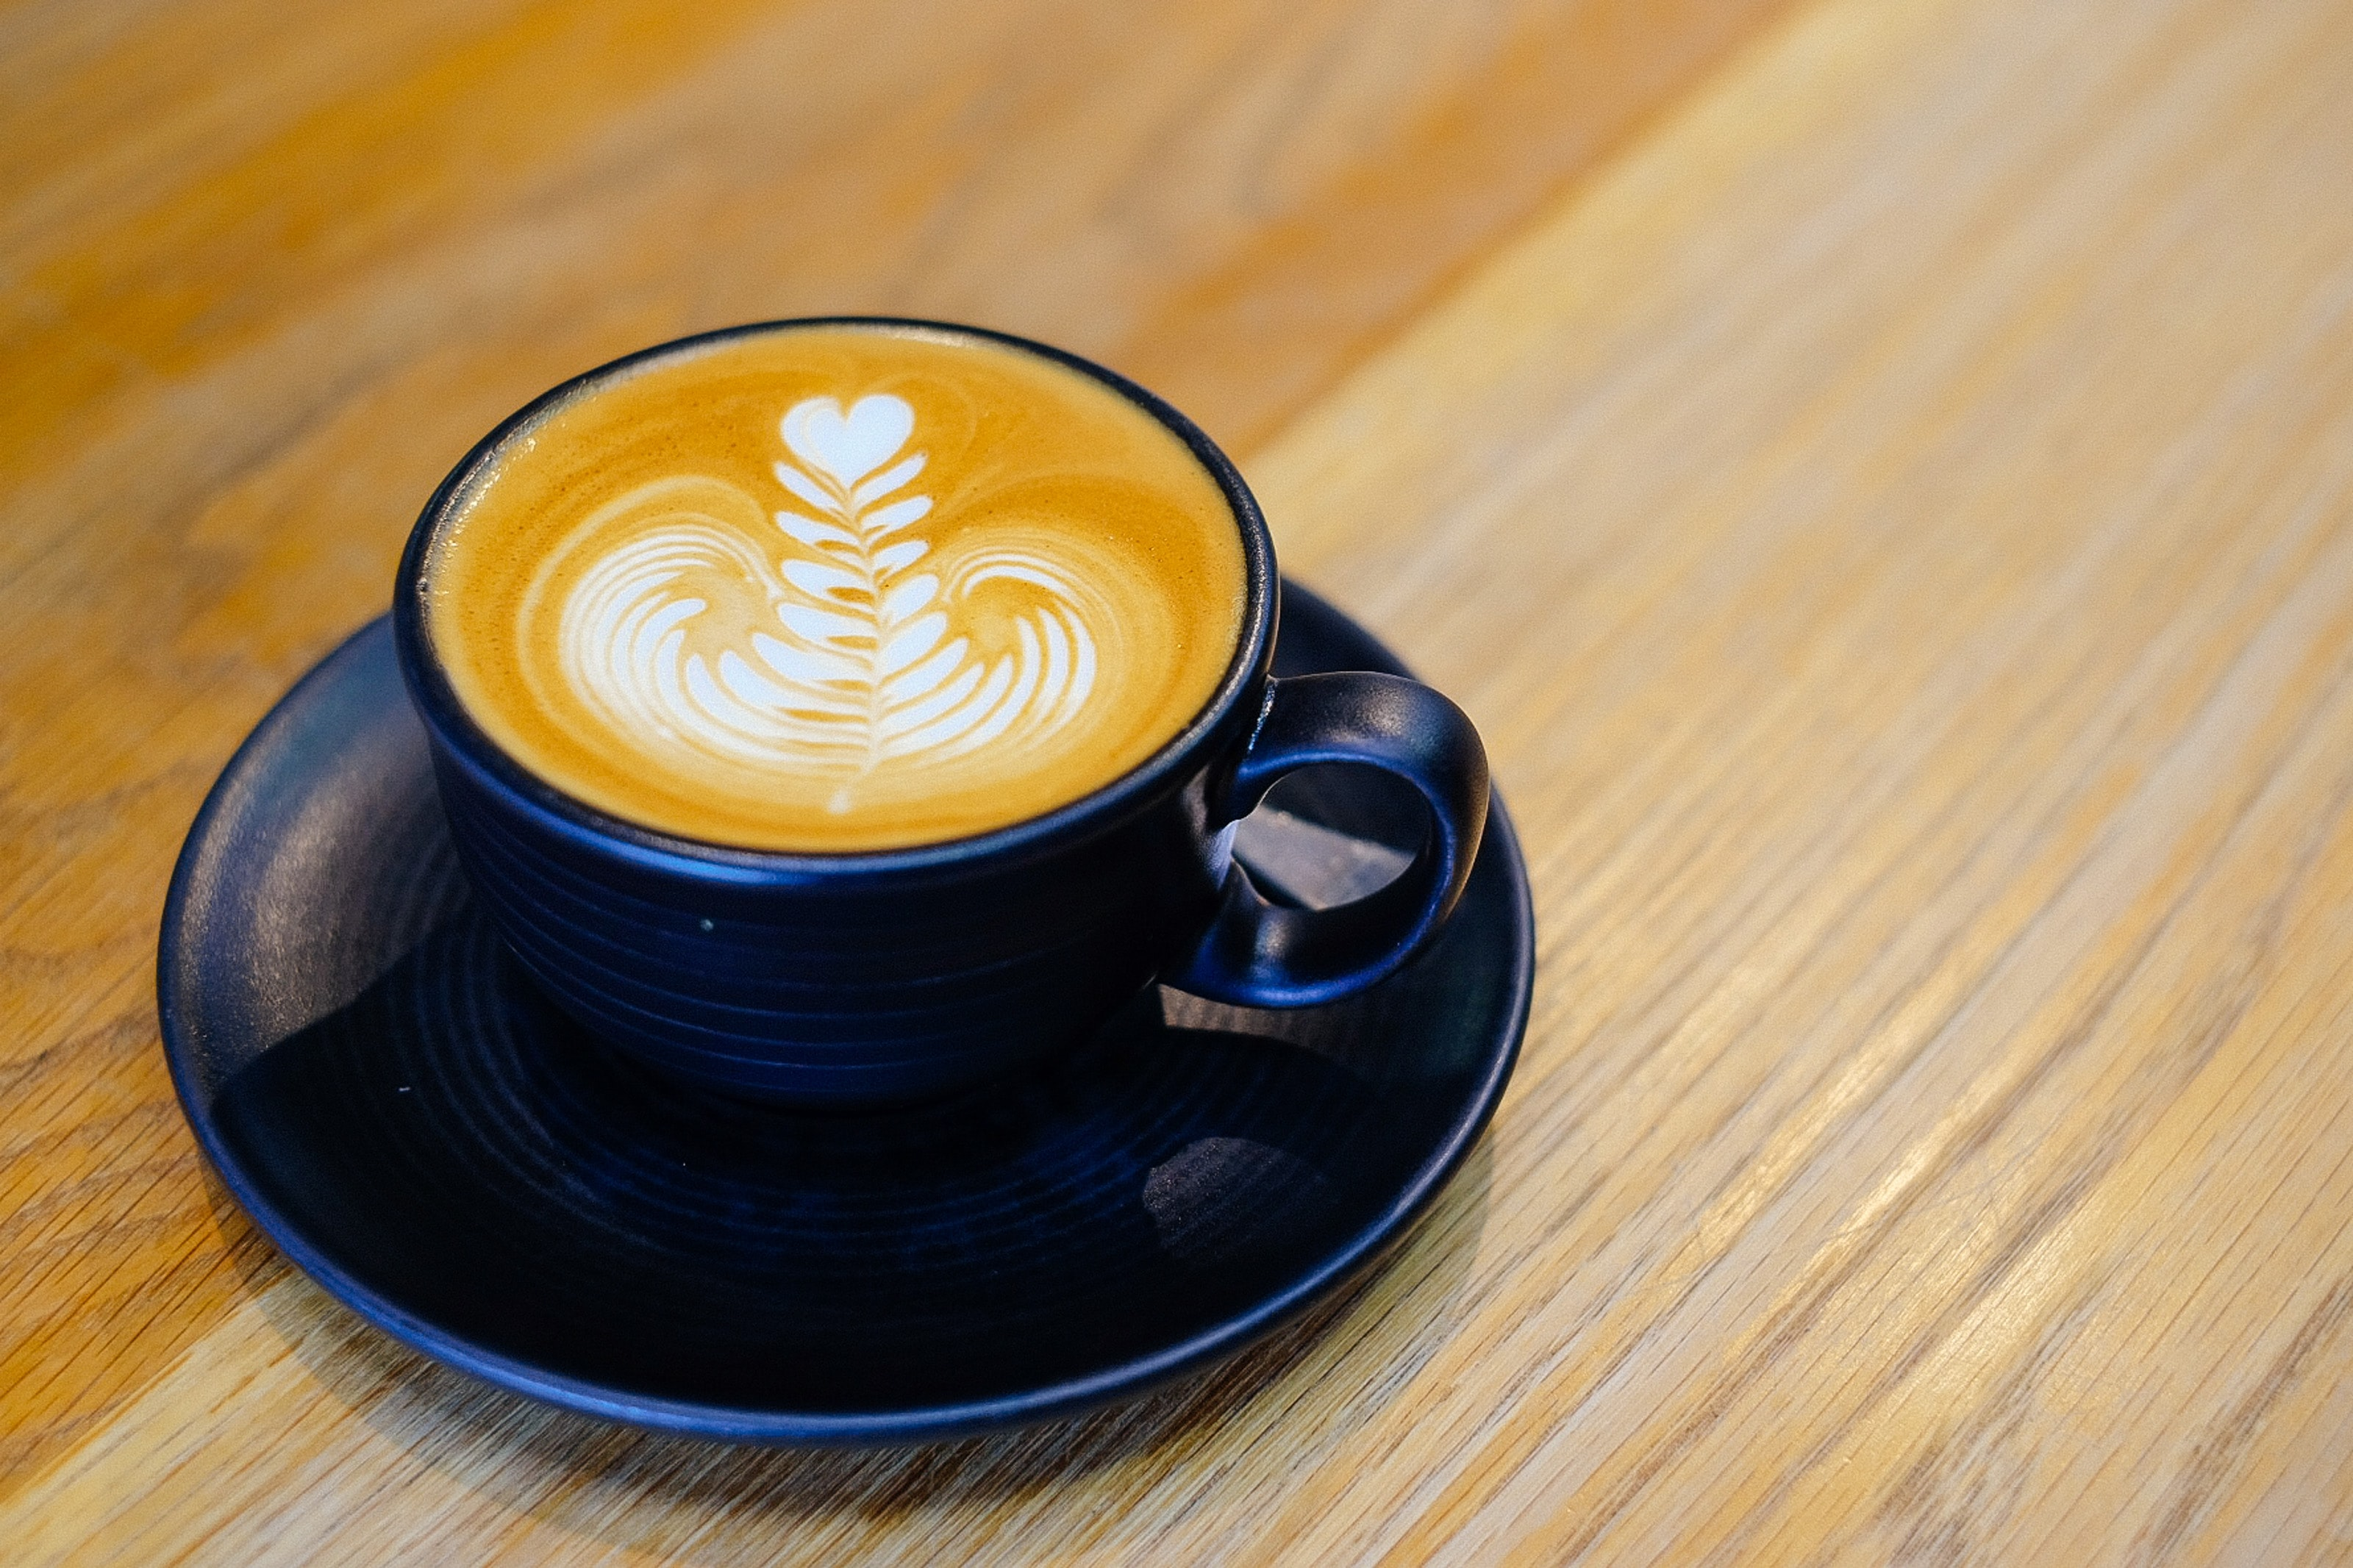 blue ceramic mug filled with cappuccino